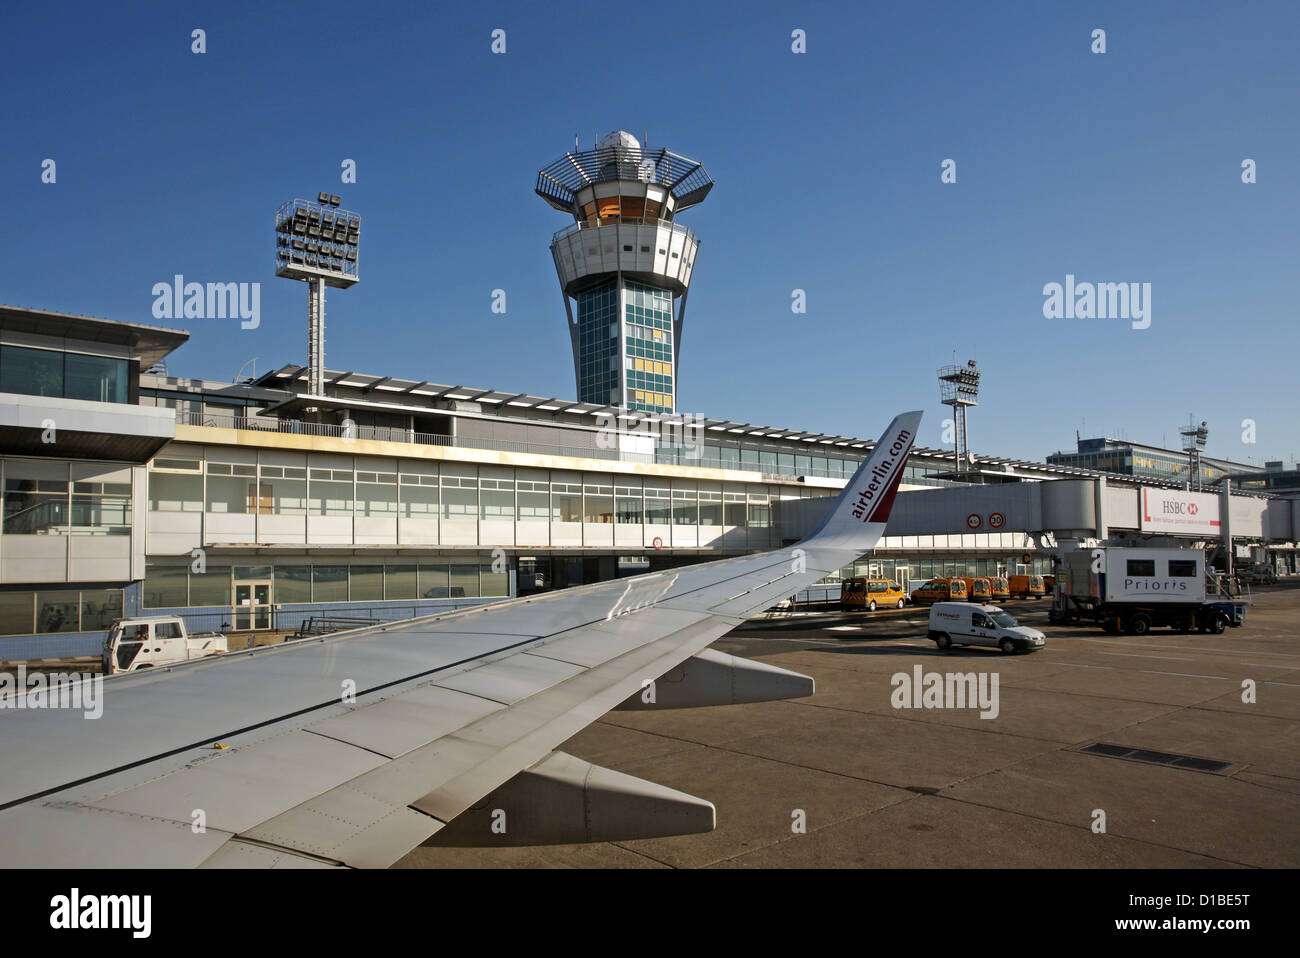 Aeroporto Orly : Orly airport photos & orly airport images alamy